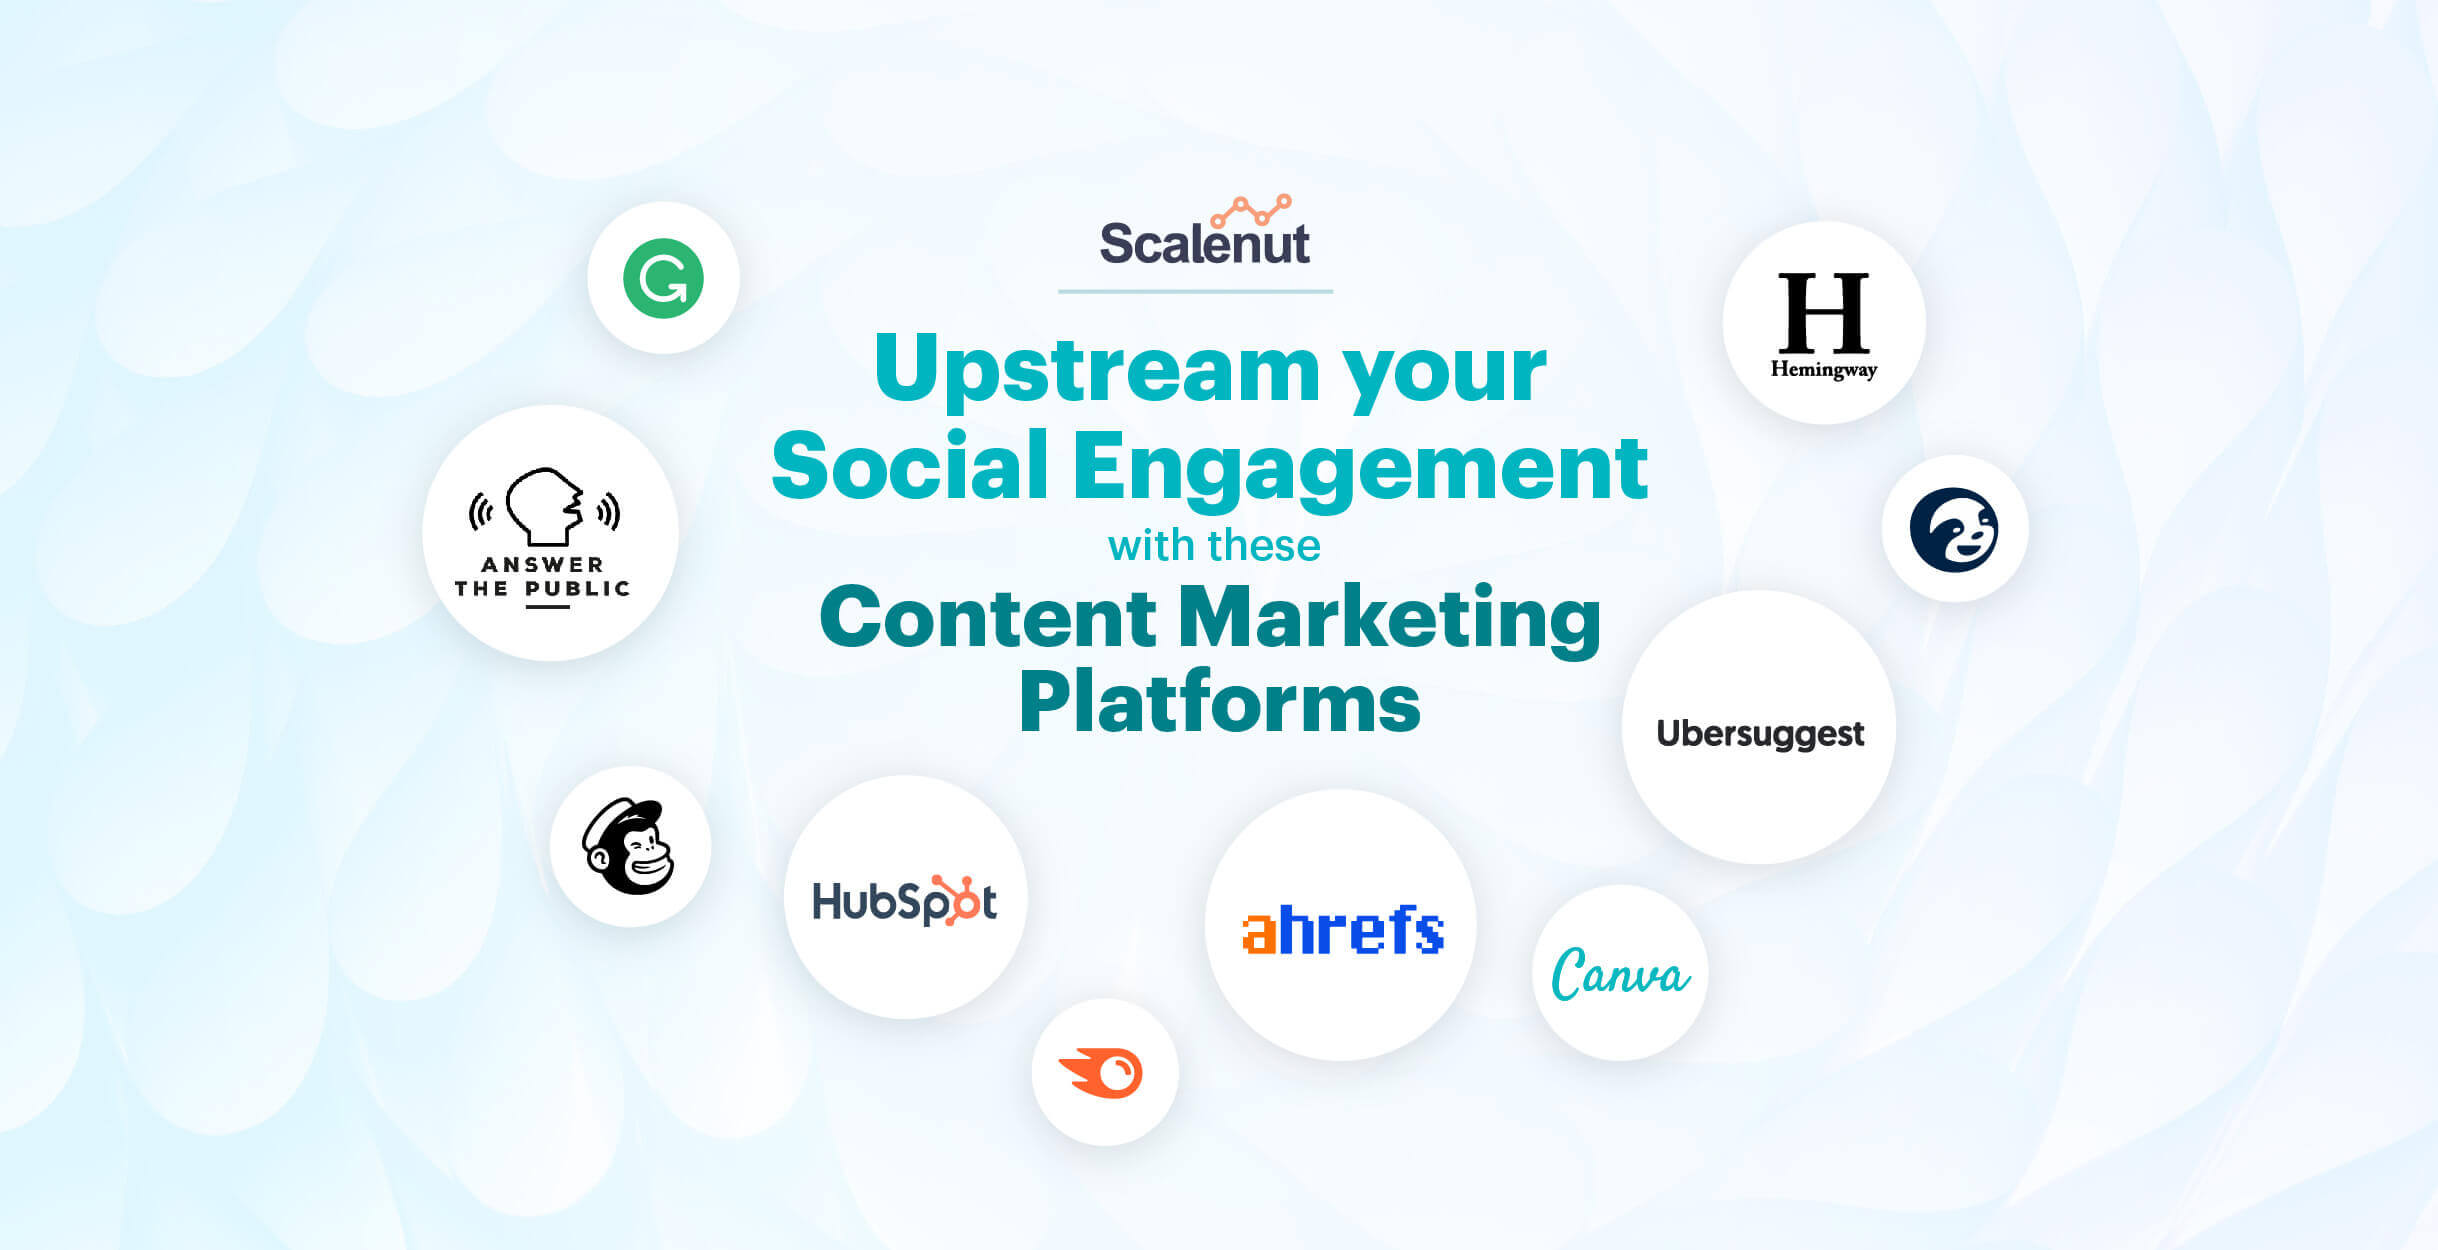 Upstream Your Social Engagement With These Content Marketing Platforms